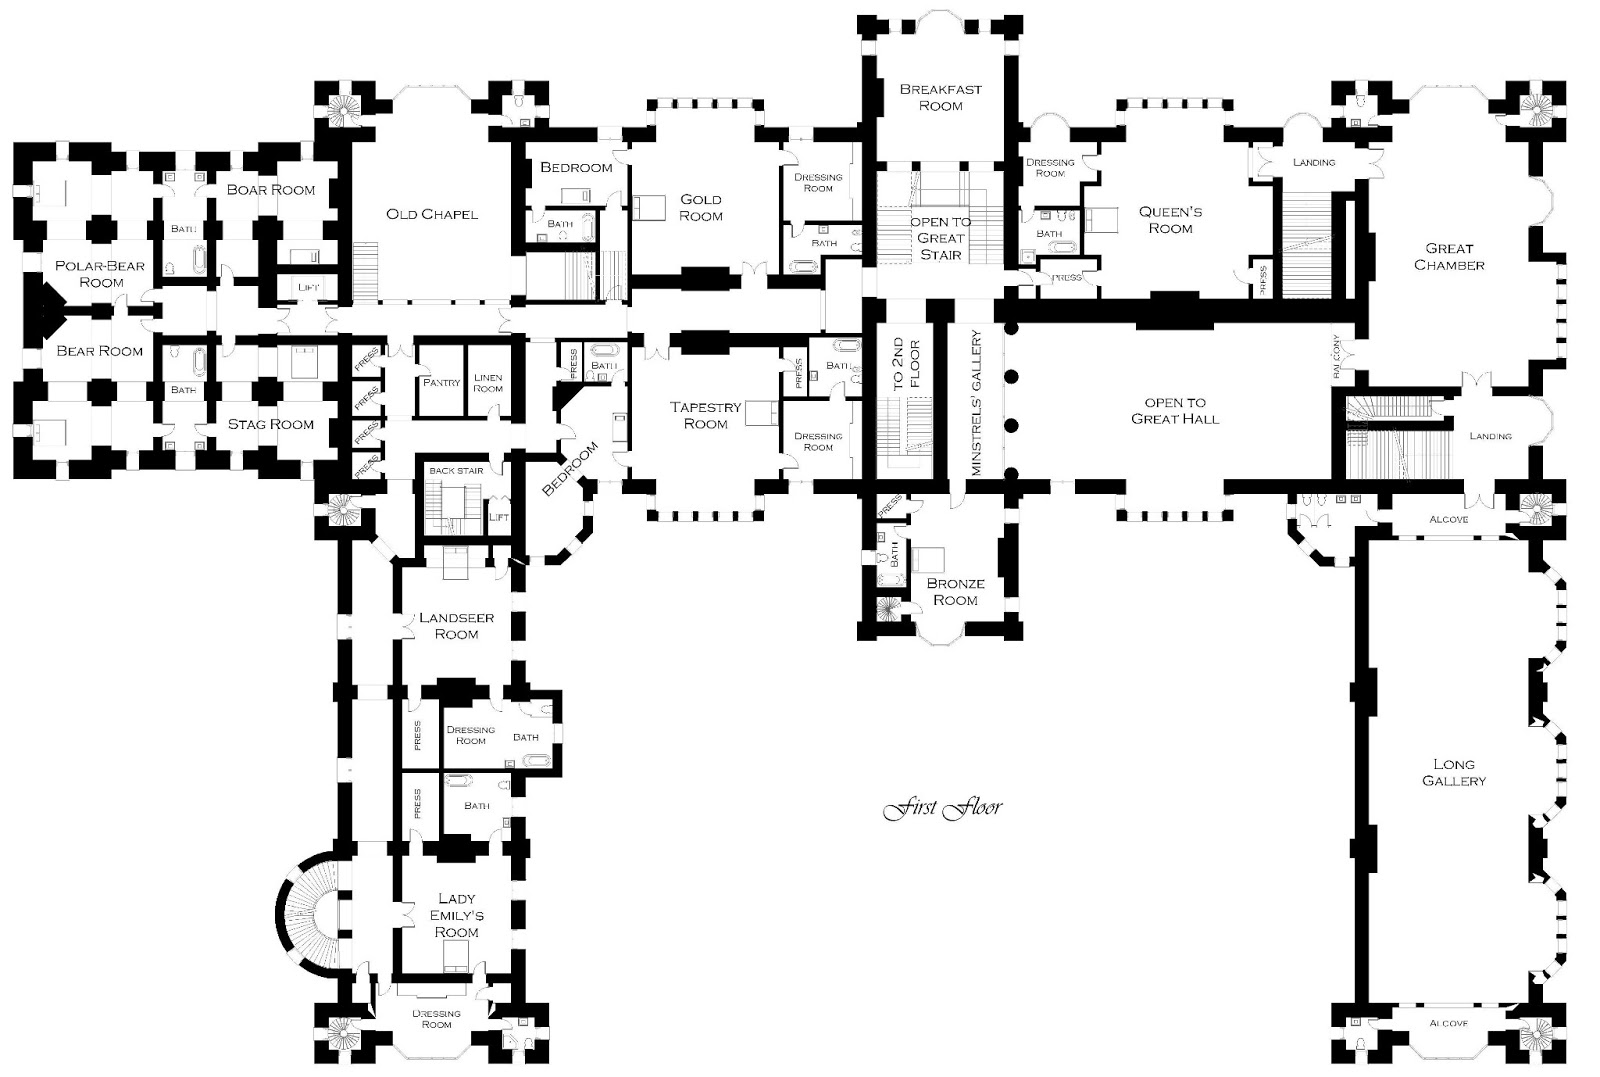 Architectural Floor Plan Symbols moreover House Floor Plans 3 Bedroom 2 Bath 1 Story besides Victorian Mansion Floor Plans as well School Gym Floor Plan moreover Plan Of The Week 17 M 2685 A Merlot. on hip room home plans